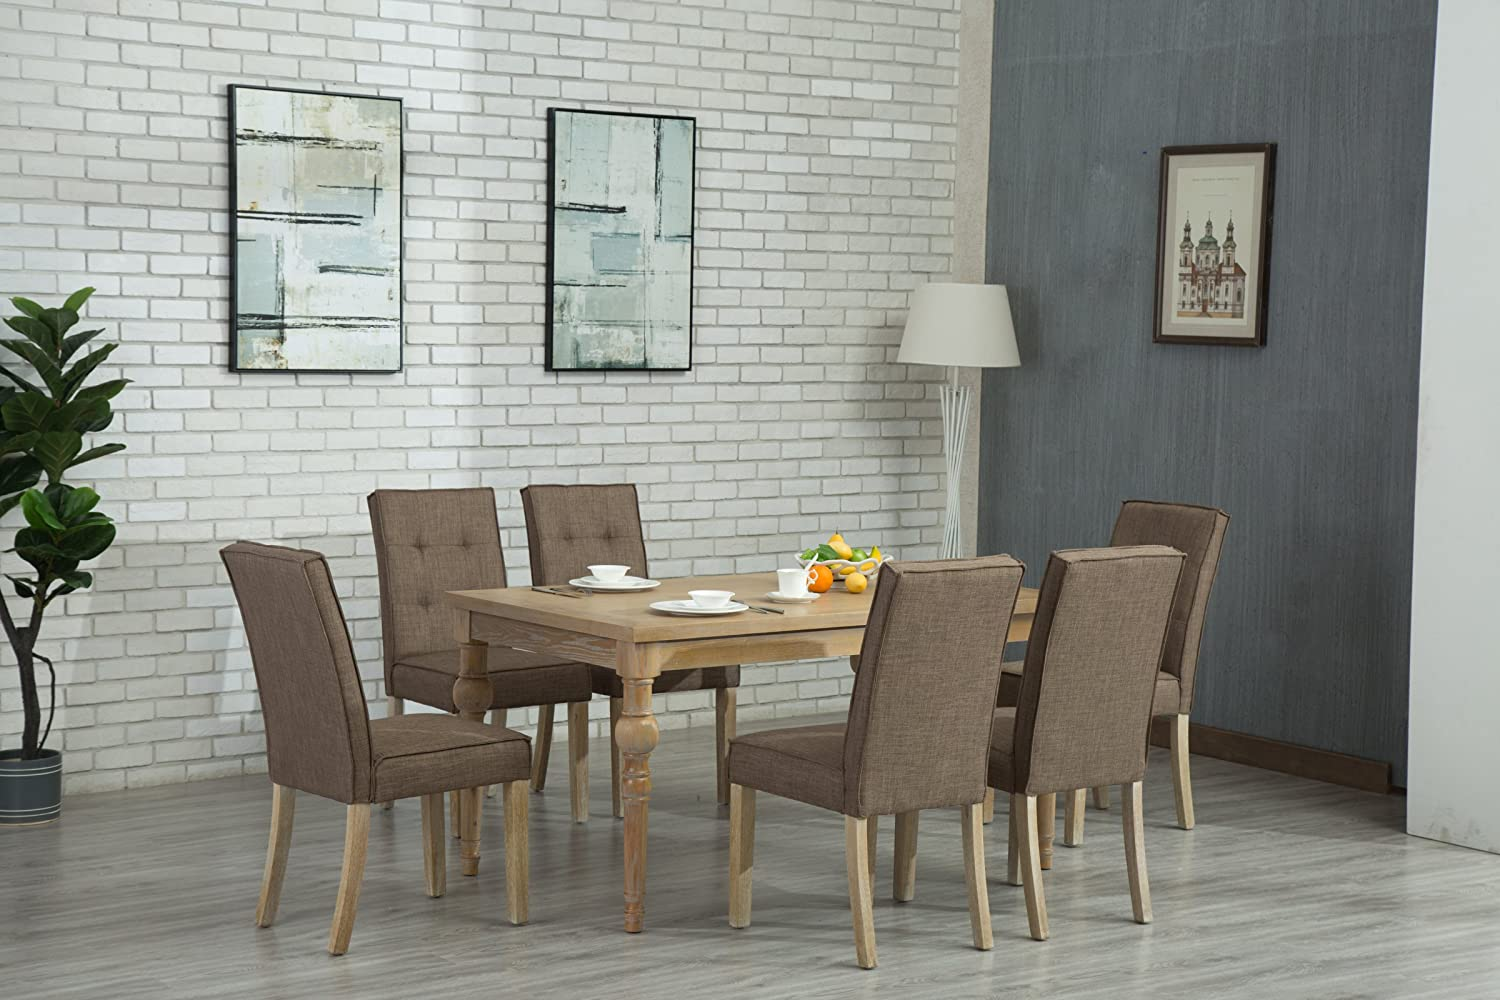 Oliver Smith – Roosevelt Collection – 7 Piece Dining – Table and 6 Chairs – Dinette Table Linen Chairs Set Antique Washed Oak 150262darkgrey